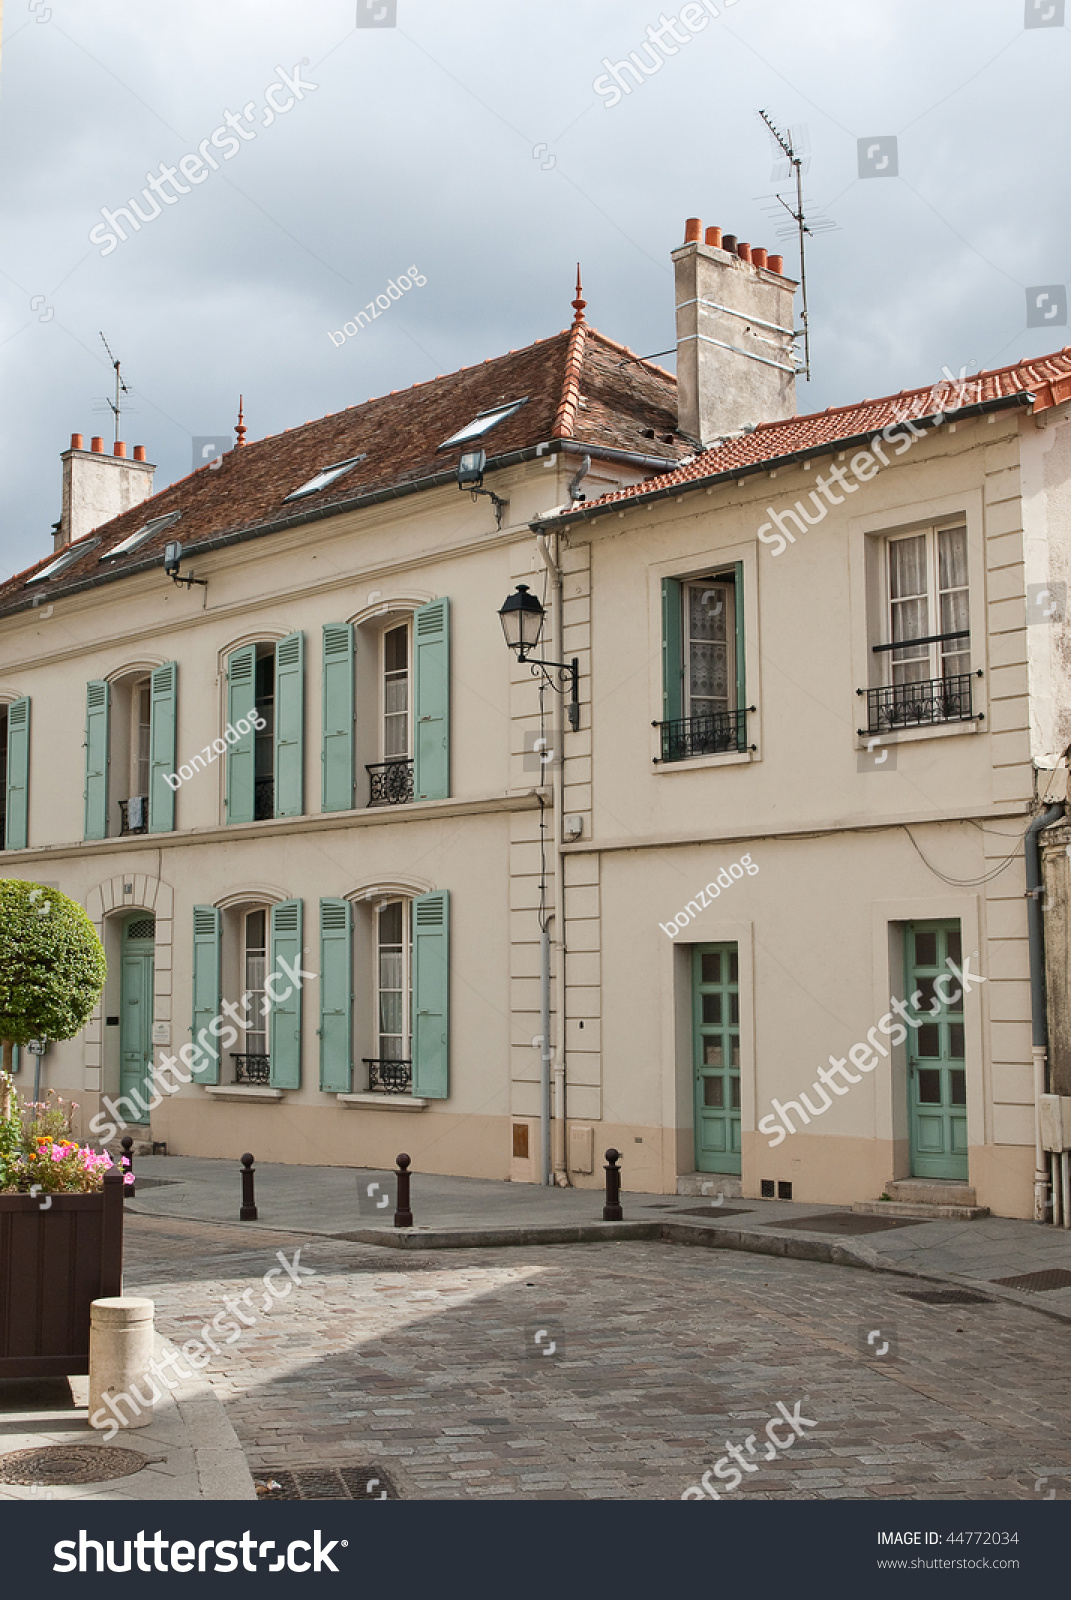 Classic house on the street france stock photo 44772034 for Classic house green street